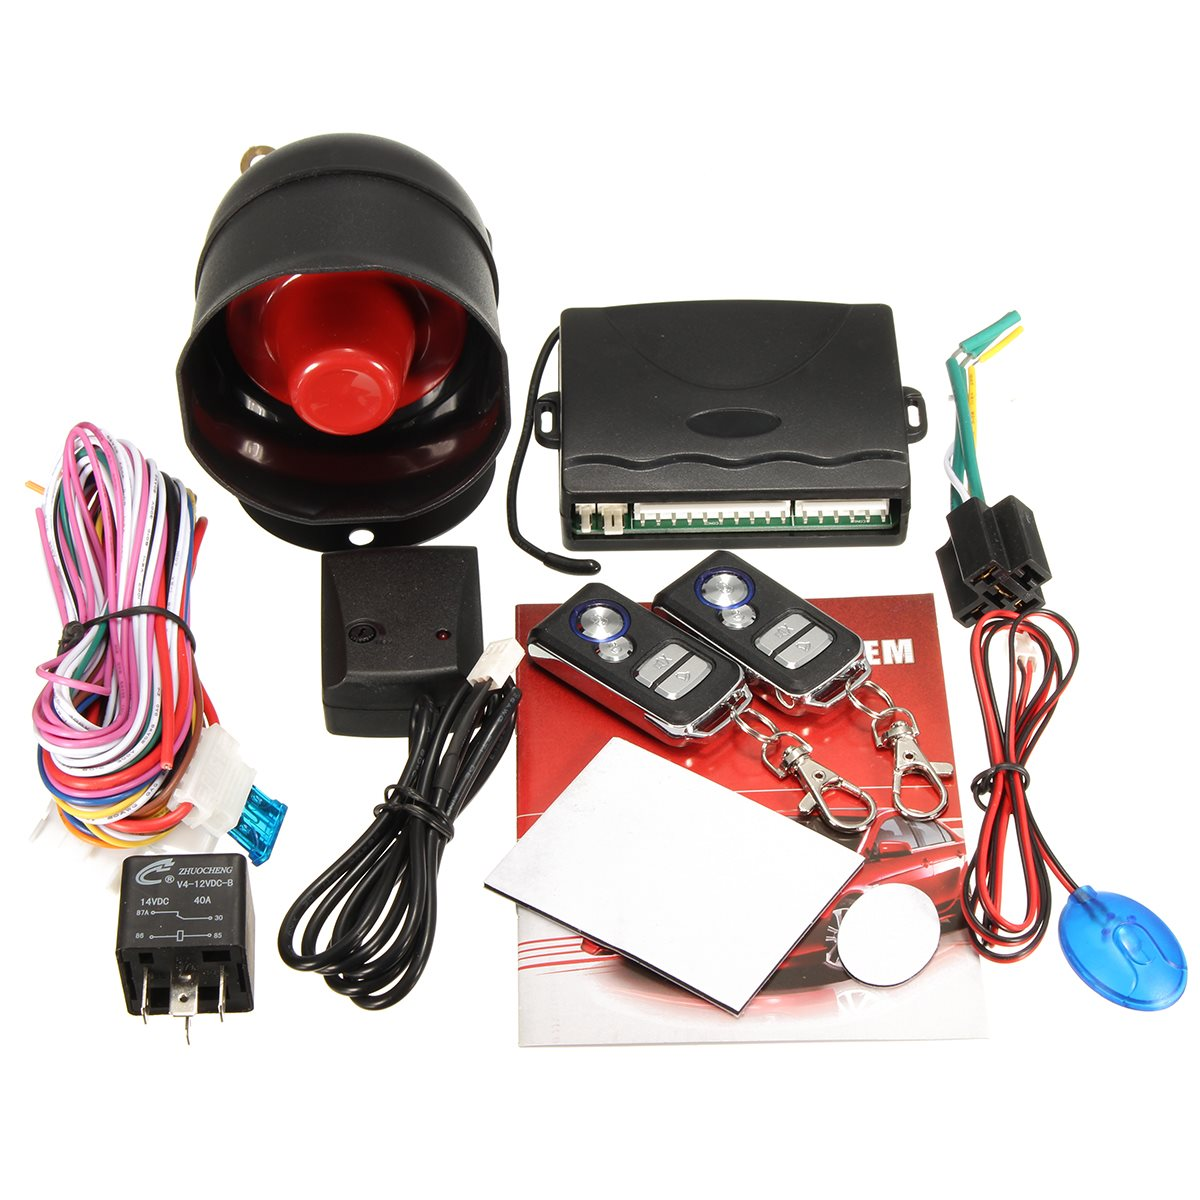 NEW Universal 1-Way Car Vehicle Alarm Protection Security System Keyless Entry Siren +2 Remote Control Burglar top quality rolling code pke car alarm system with passive keyless entry power window output automatically lock unlock car